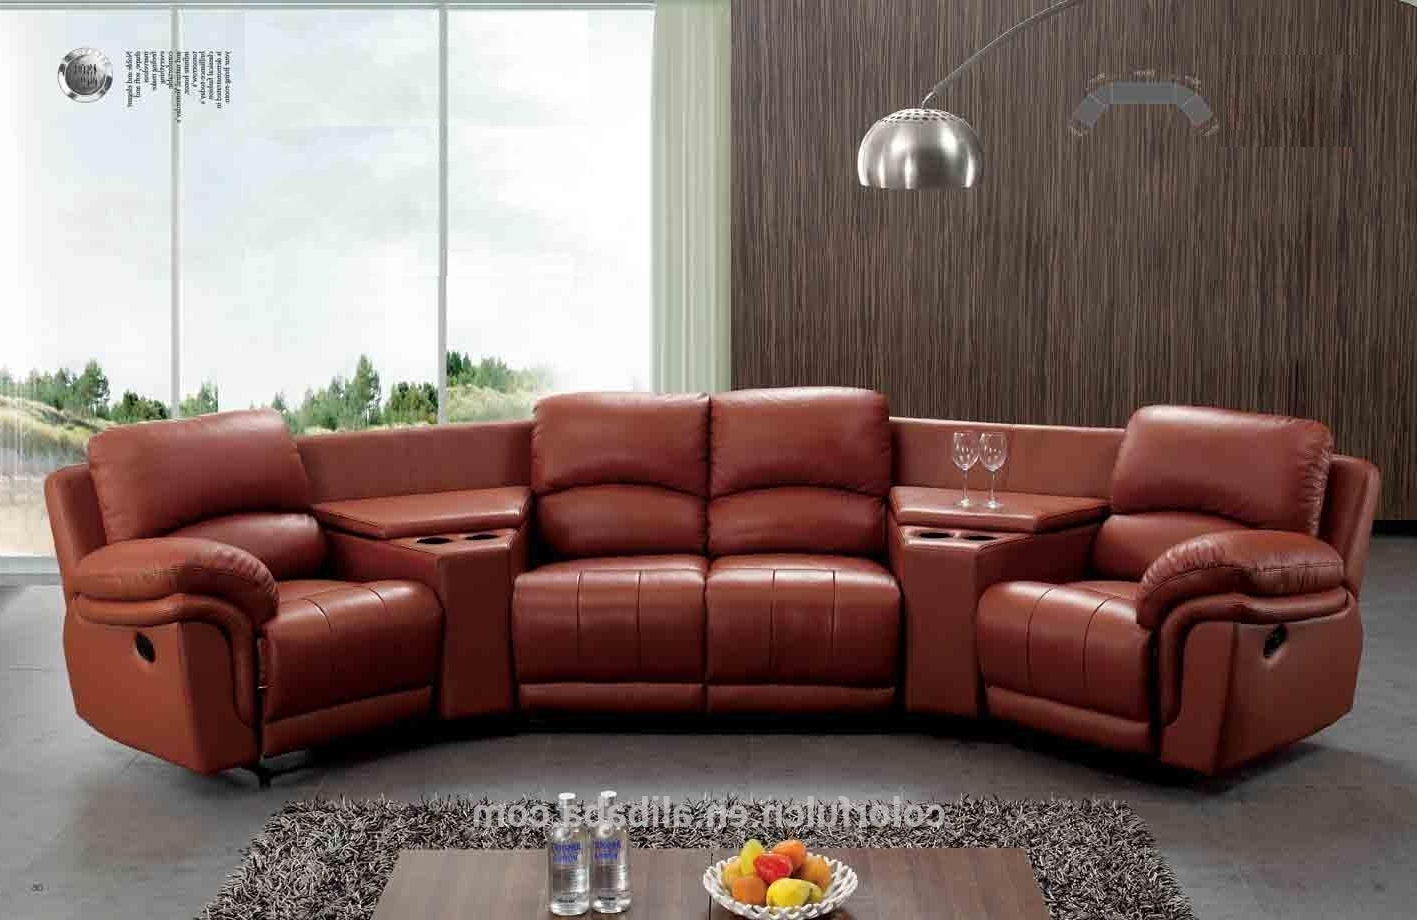 Well Liked Sectional Sofa Design: Semi Circular Sectional Sofa Couches Round Regarding Sectional Sofas In Hyderabad (View 15 of 15)